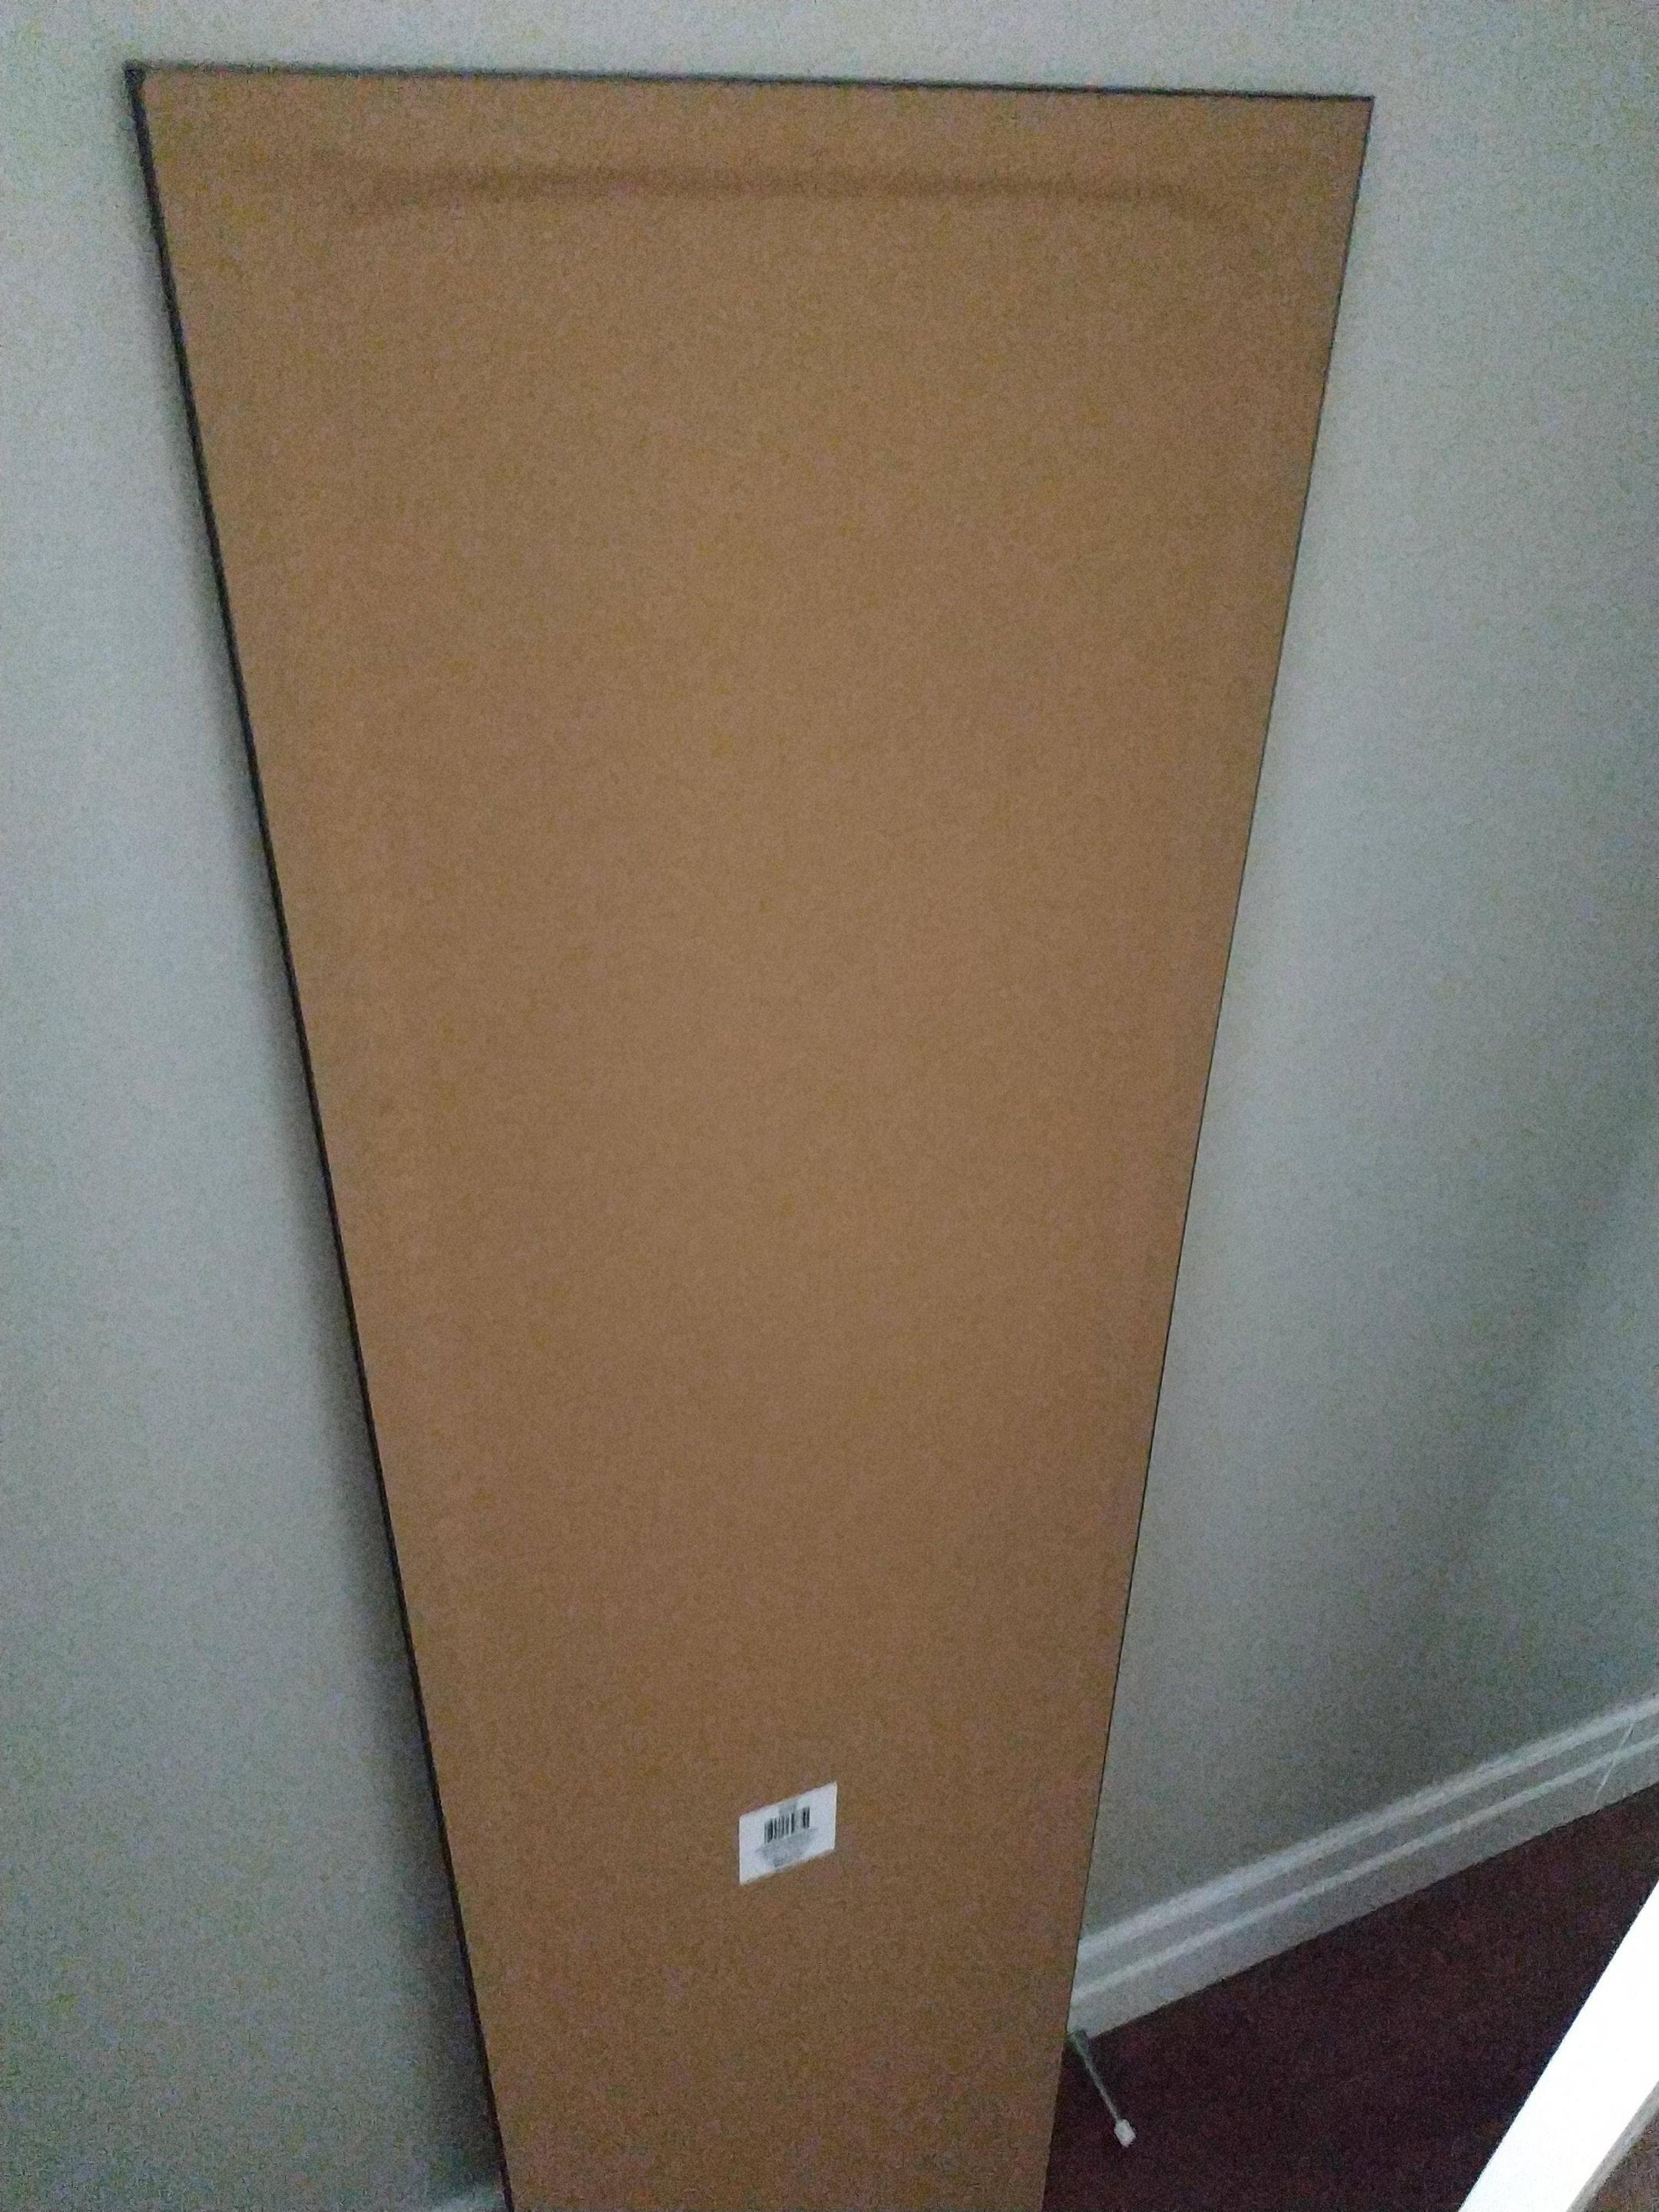 Safely Hang A Mirror That Does Not Have Hooks Home Improvement Stack Exchange